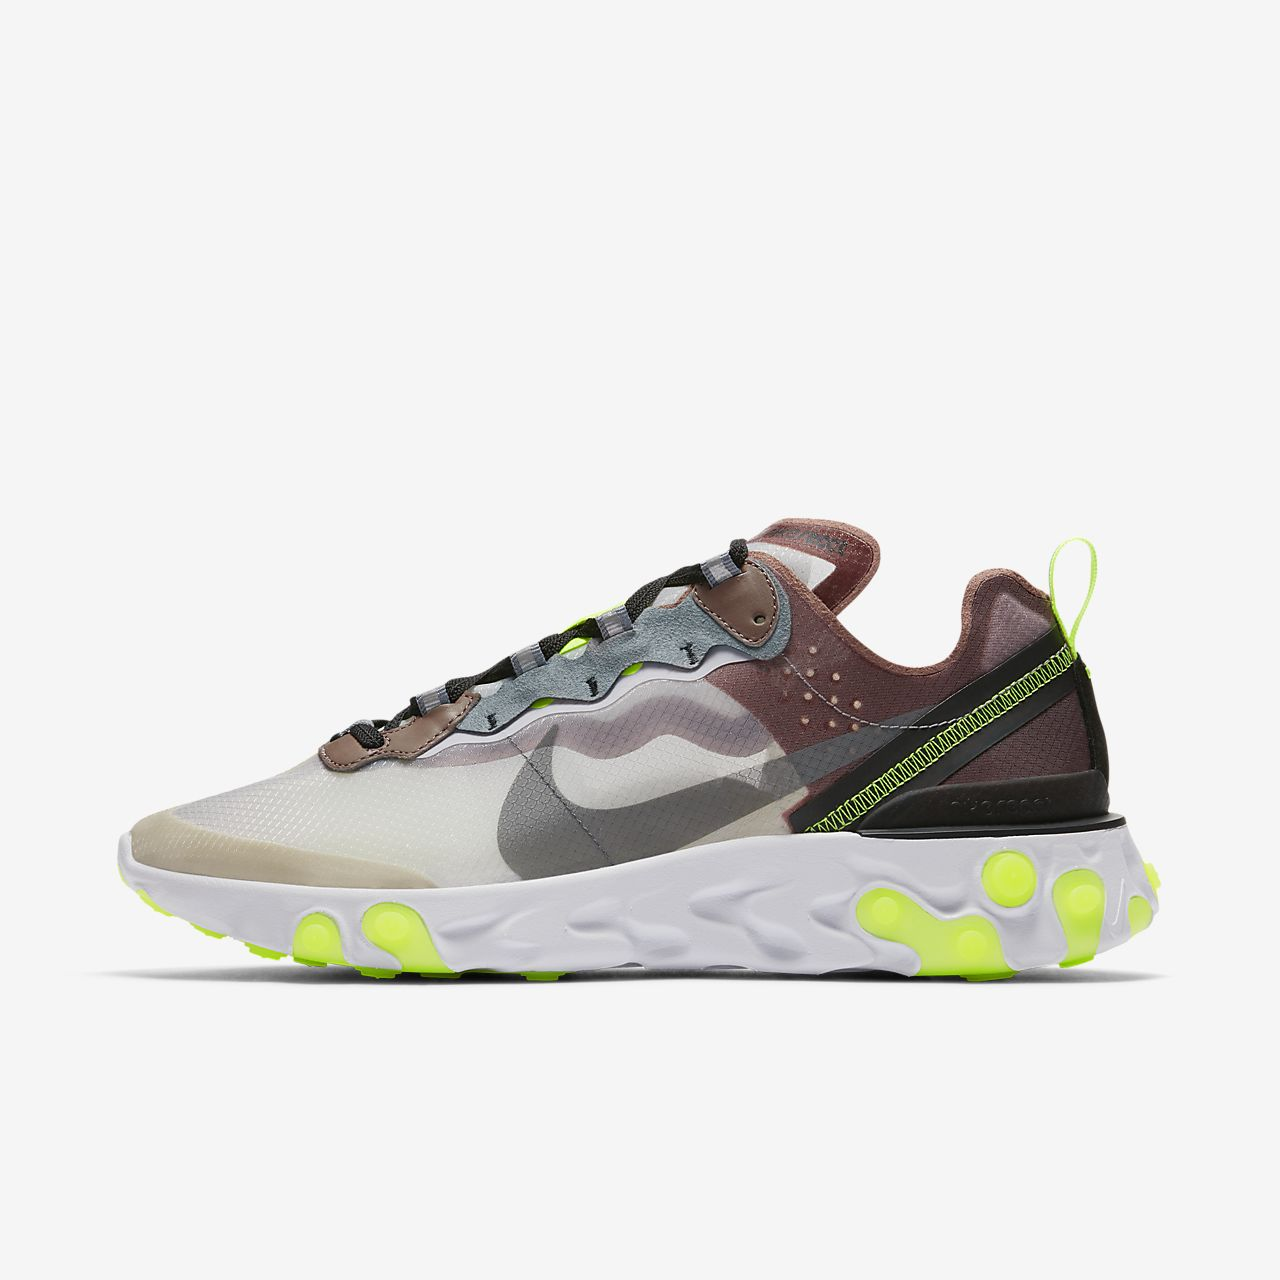 Nike React Element 87 Mens Shoe